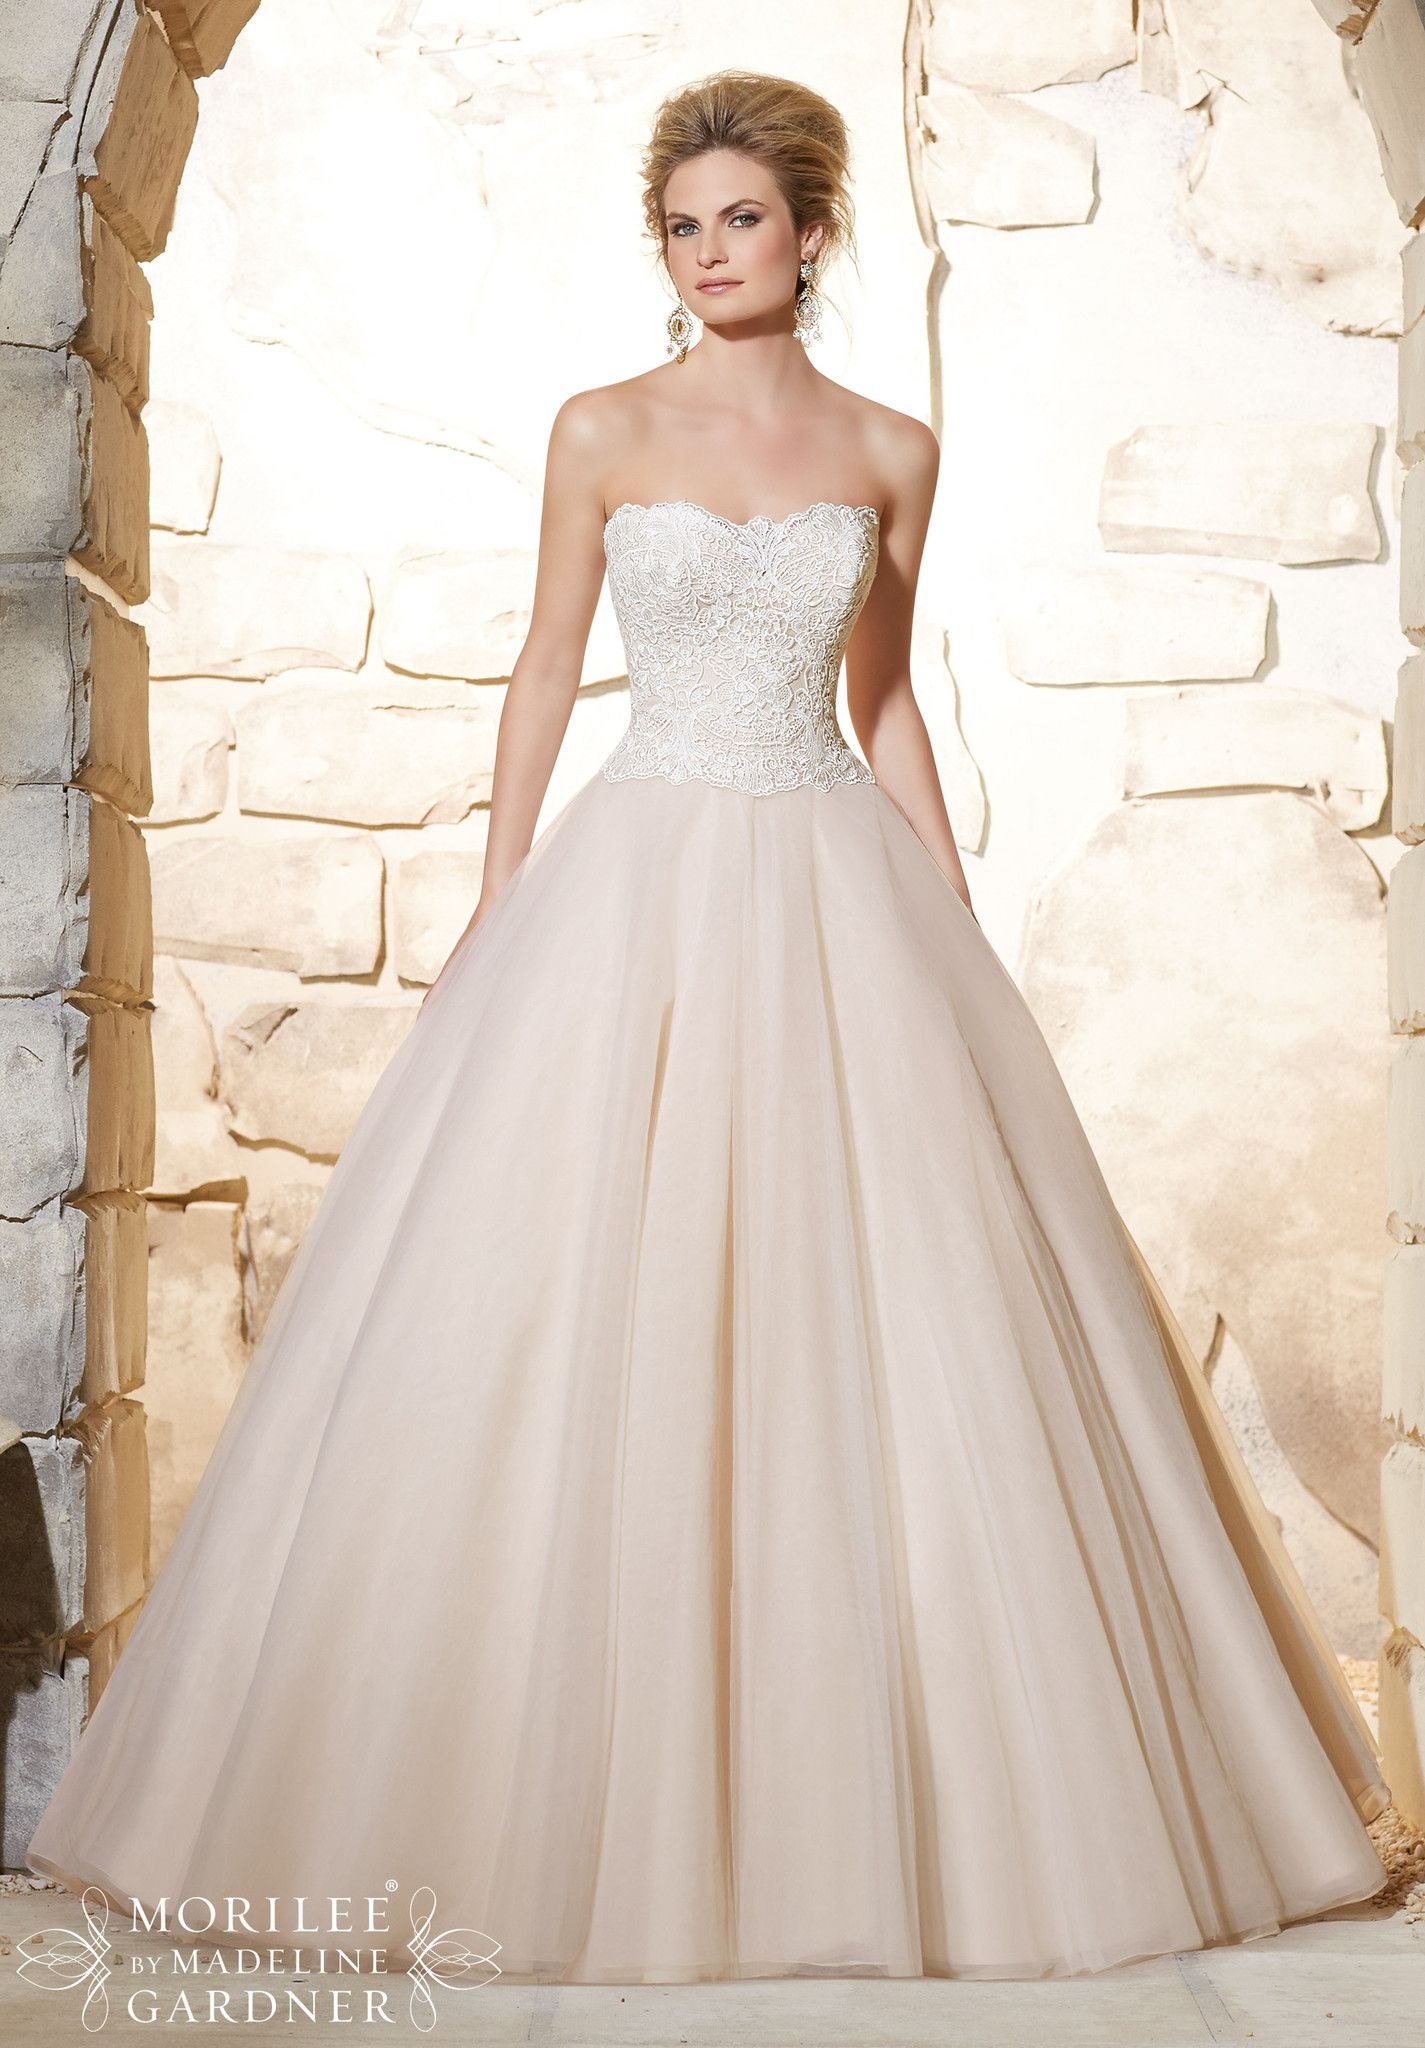 Mori lee all dressed up bridal gown